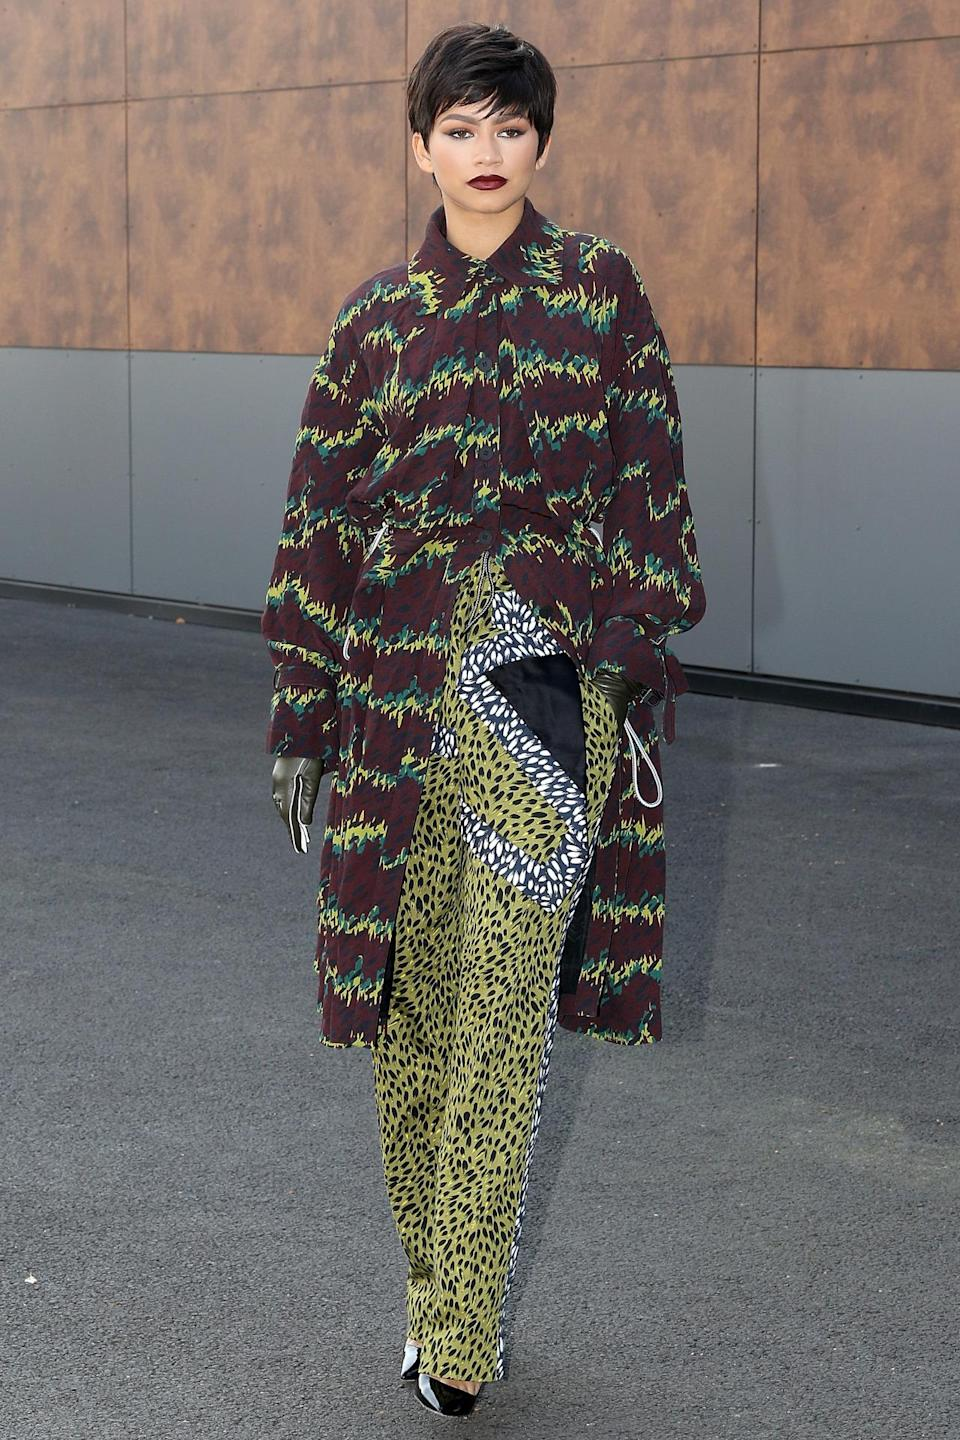 <p>At Kenzo, Carol Lim and Humberto Leon sent over-the-knee boot sandals, belt pochettes aka fannypacks, and clothes in graphic prints down the runway. Zendaya dressed appropriately in a green, brown, black, and white animal print ensemble from the brand's Fall 2015 collection. She wore a pixie wig and burgundy lipstick to match the outfit's coat. </p><p><i>Photo: Getty Images</i><br></p>